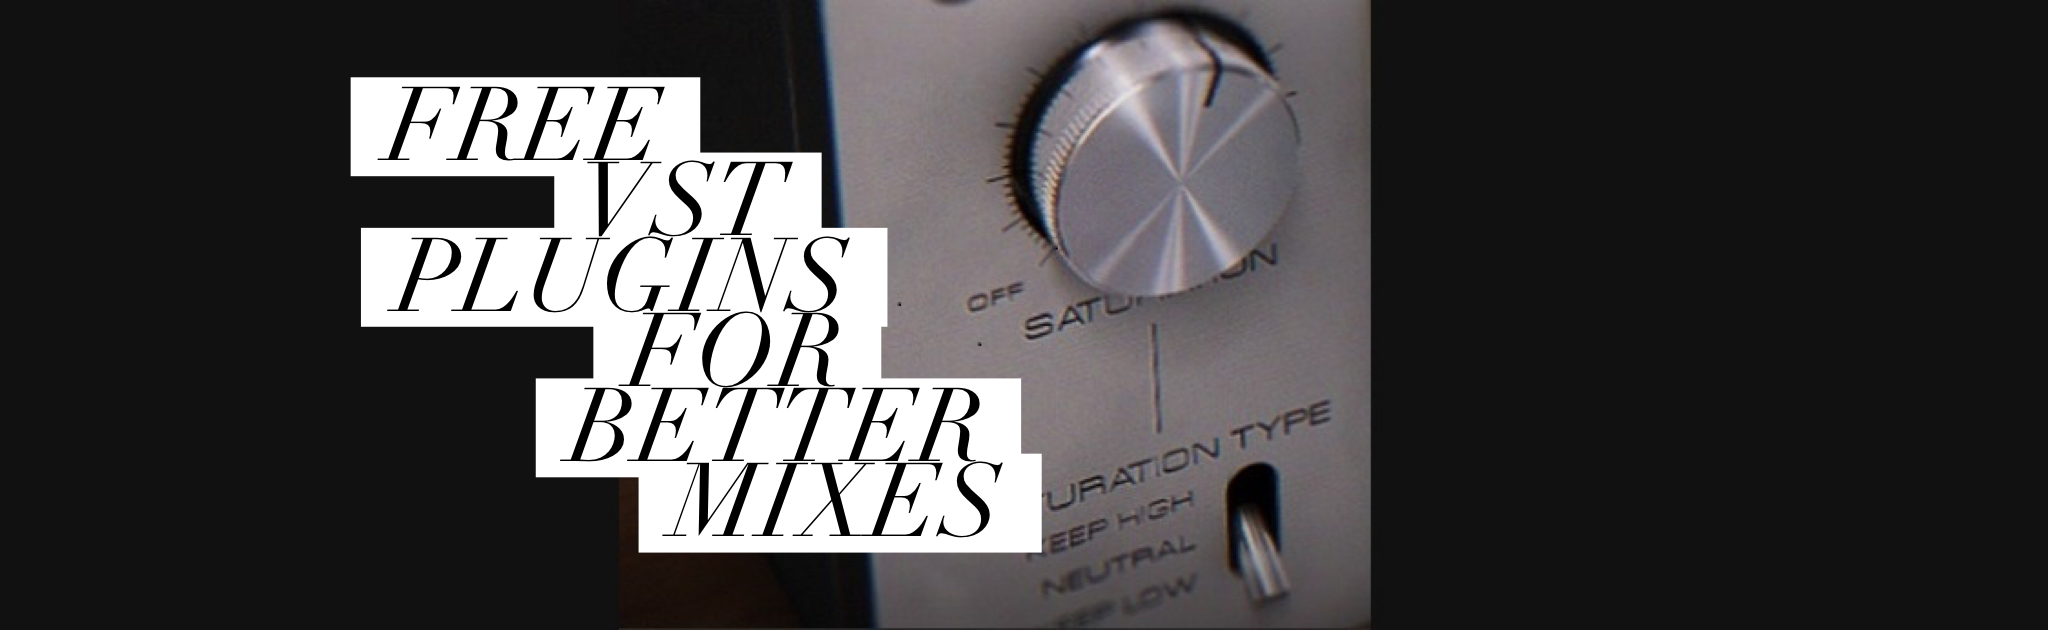 FREE VST Plugins For Better Mixes - SuperHeroSamples